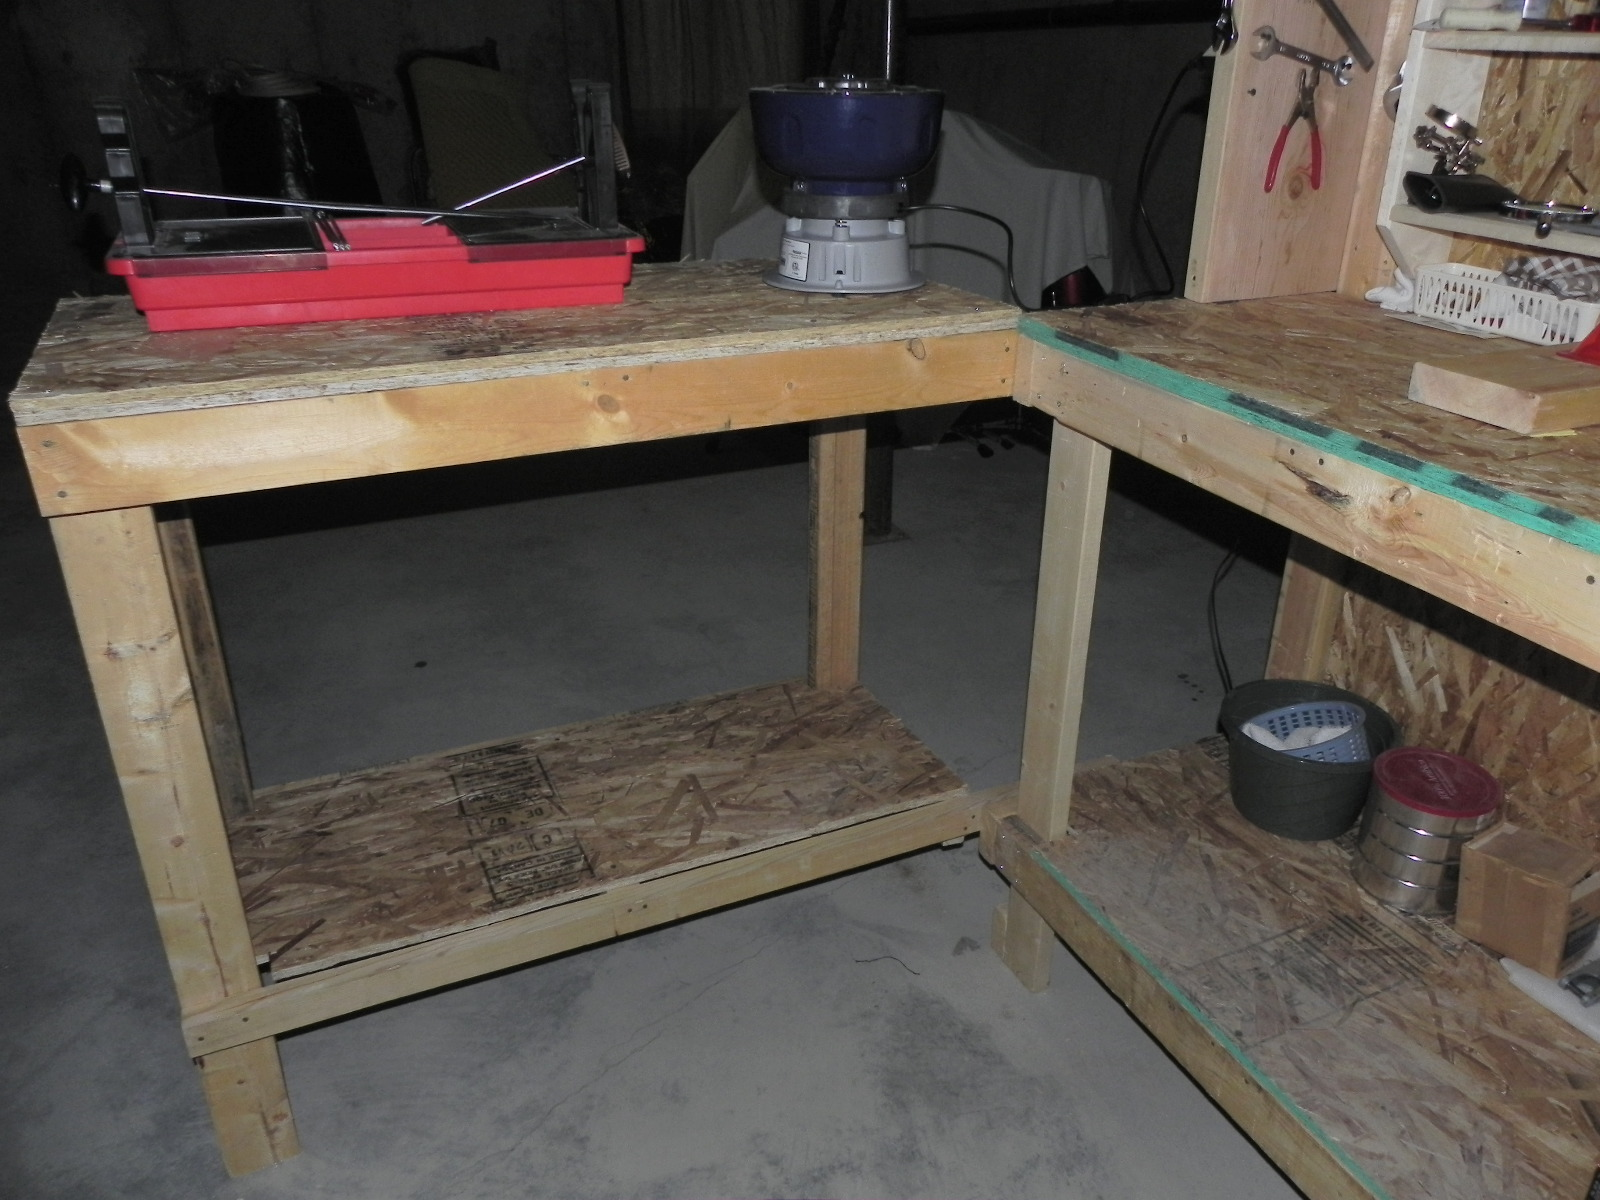 workbench bench s building nra reloading home a portable lively do best benches ts plans don fancy